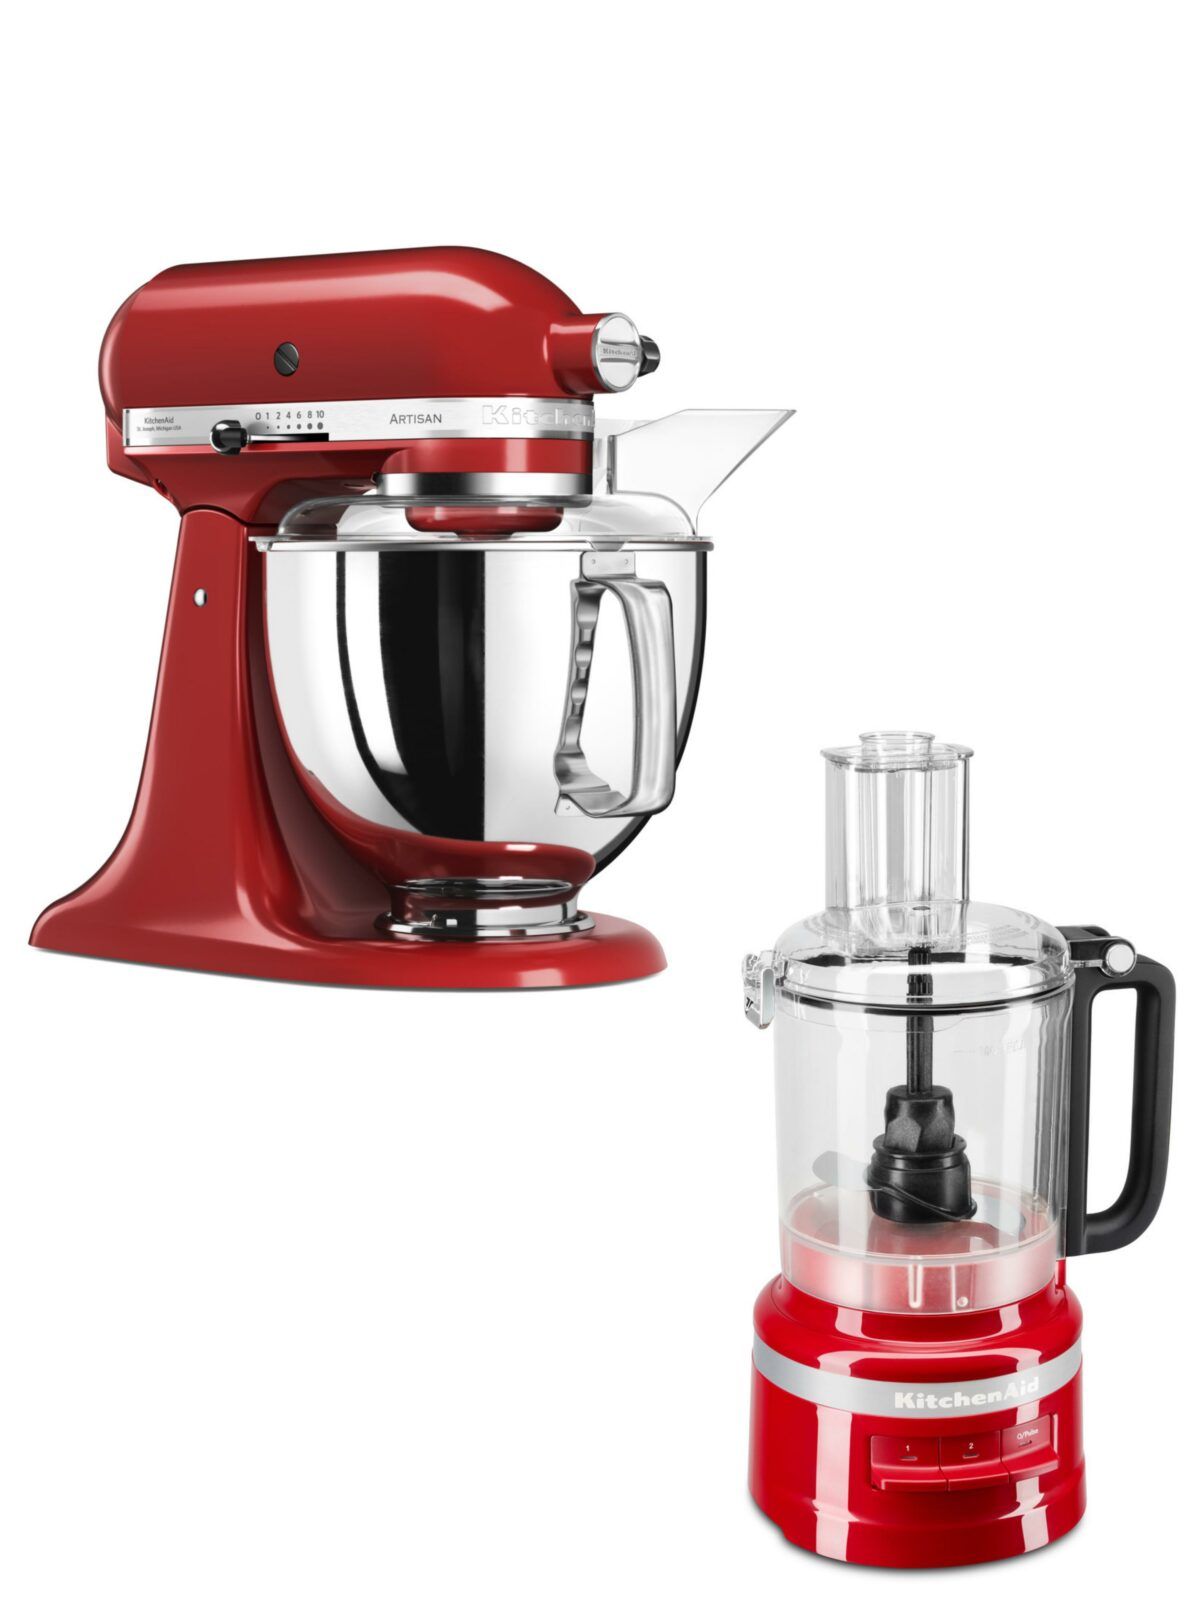 Win een KitchenAid standmixer of foodprocessor!